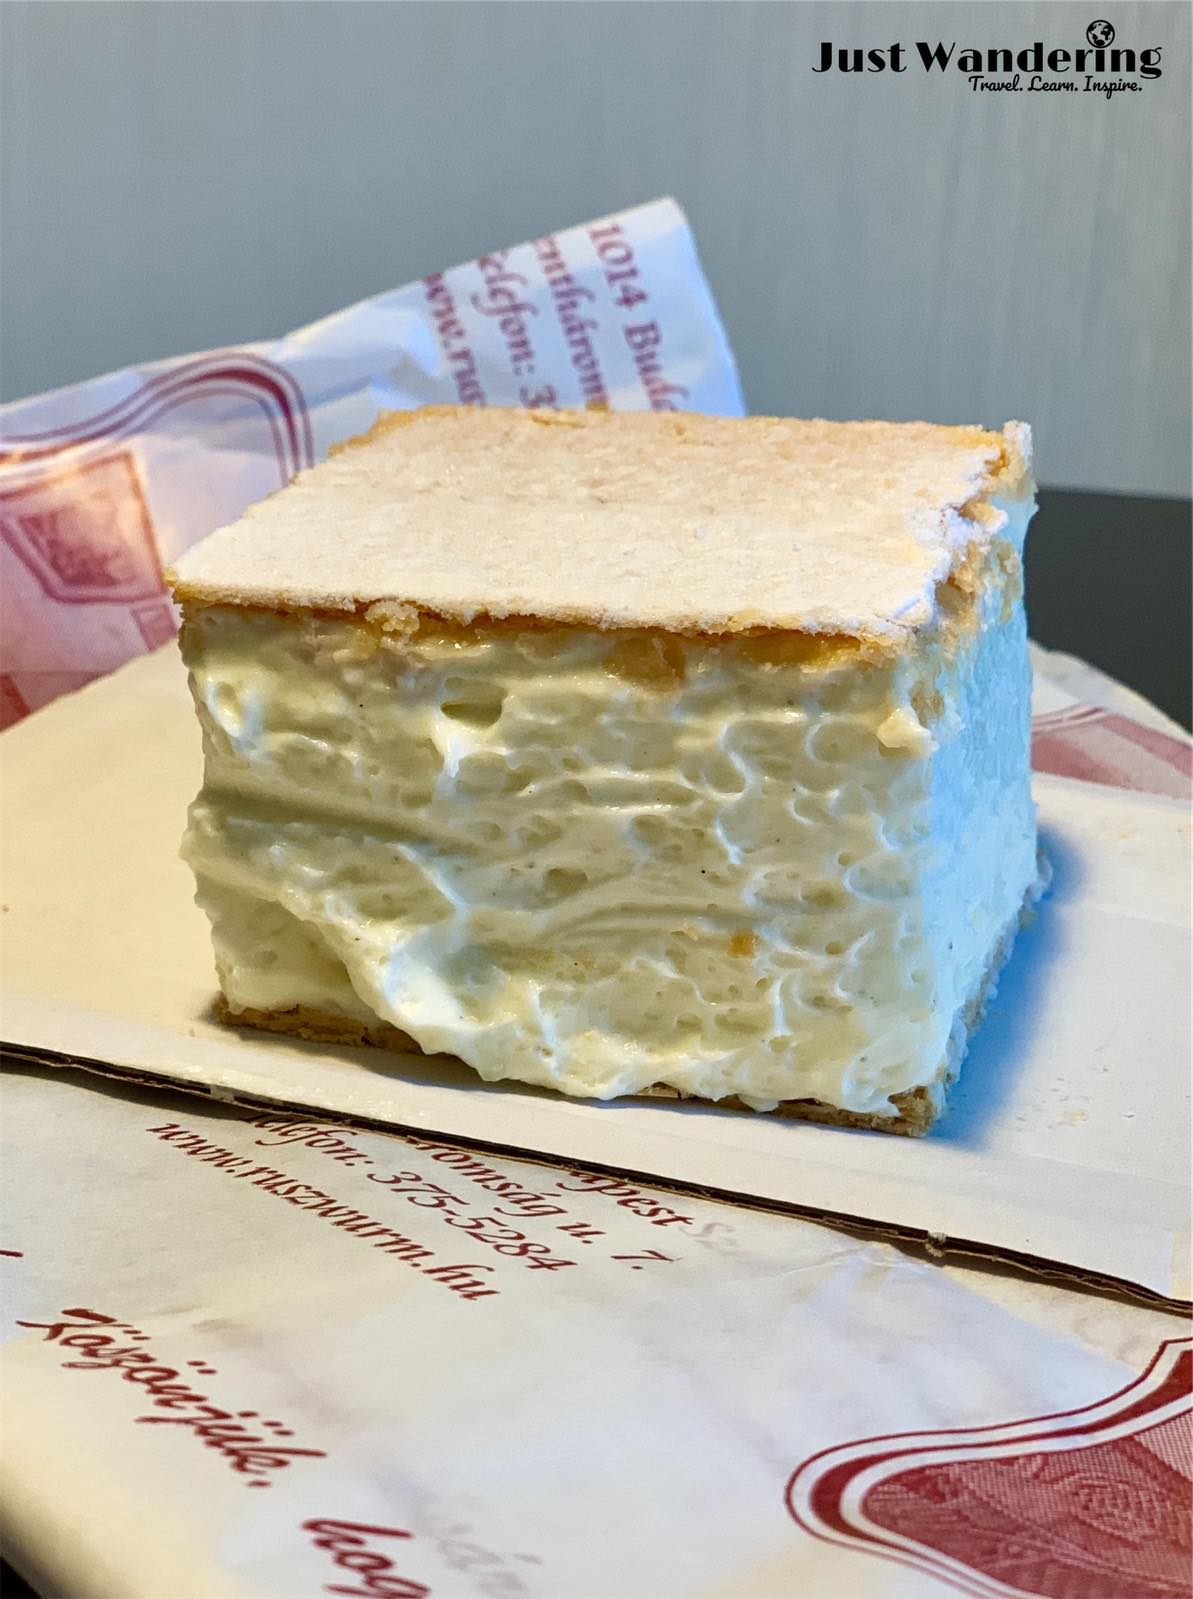 - Regardless, the famed Cream pastry is a must try when in the Buda Castle district. A Hungarian classic originating from Ruszwurm and their most popular dessert today, this decadent cake features a custard like combination of cooked egg cream, vanilla, and egg white generously nestled between two thin layers of phyllo pastry.Though somewhat sweet, definitely worth a try for anyone who is a fan of vanilla and cream, although it is a bit on the heavy side, so perhaps best shared between a couple or among friends. The confectionery itself is also a cafe with indoor and outdoor seating, so why not spend an hour sitting outside the shop, and watch as the throngs of tourists come and go from nearby Fisherman's Bastion?